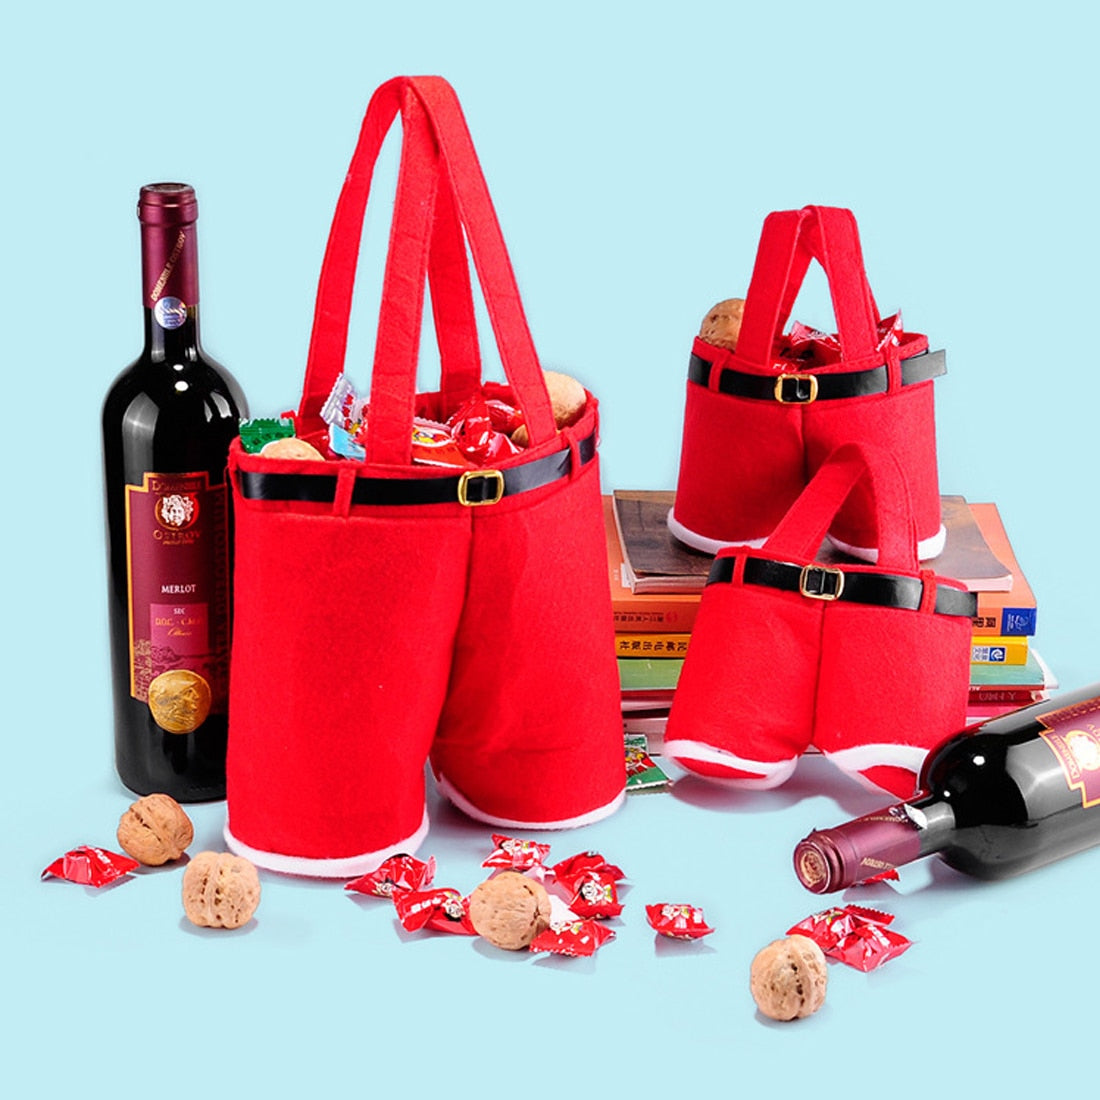 Useful 1Pc Merry Christmas Gift Treat Candy Wine Bottle Holder Santa Claus Suspender Pants Trousers Decor Christmas Gift Bags